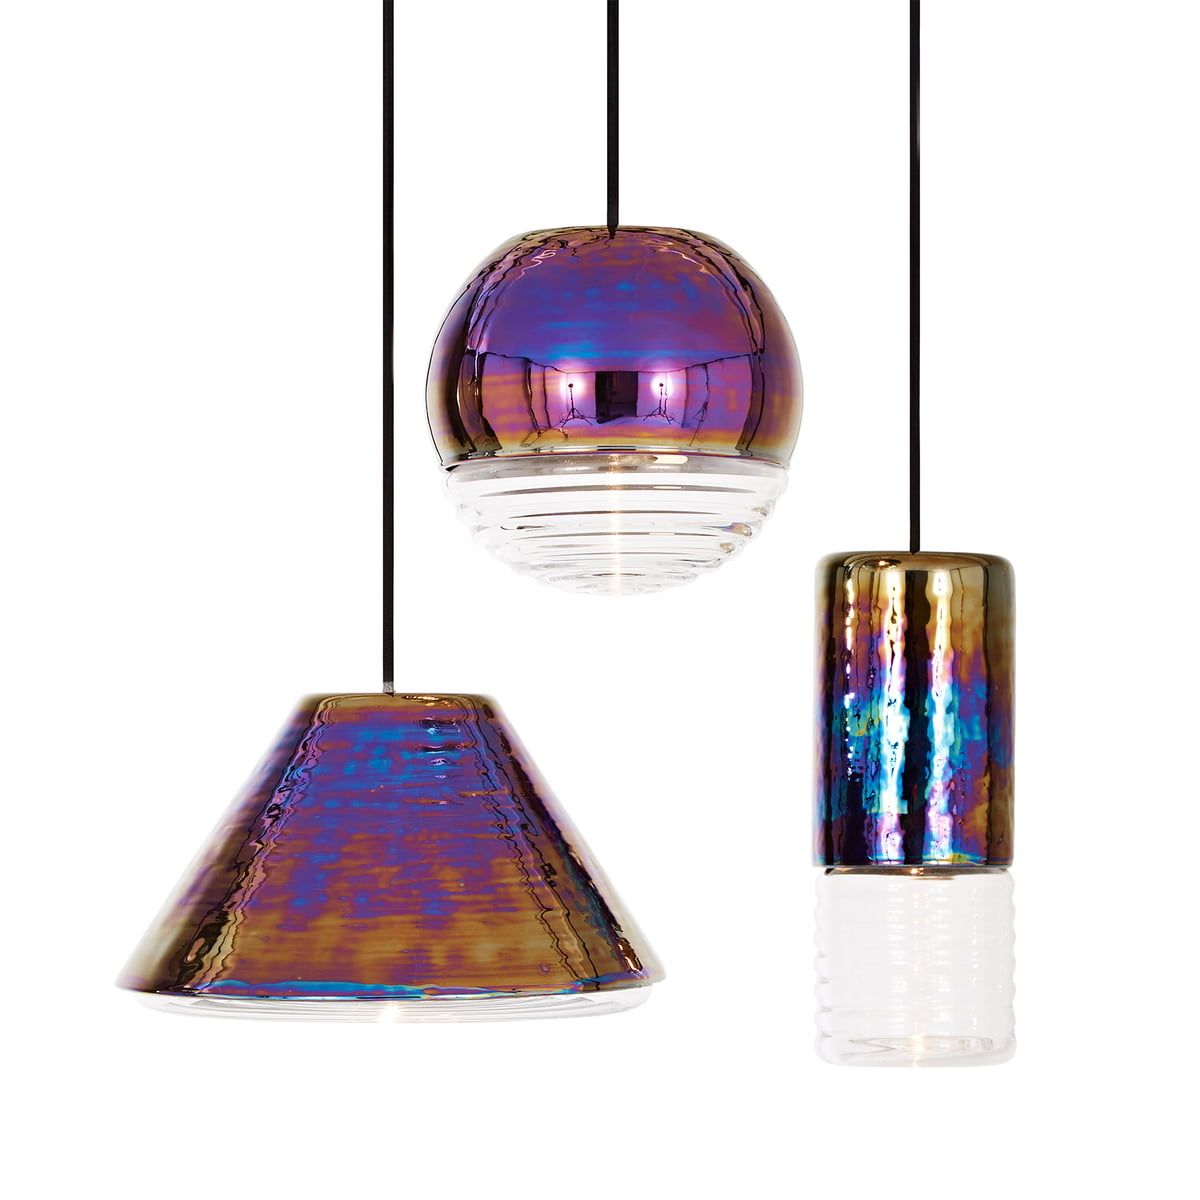 flask pendant lamp oil ball by tom dixon. Black Bedroom Furniture Sets. Home Design Ideas